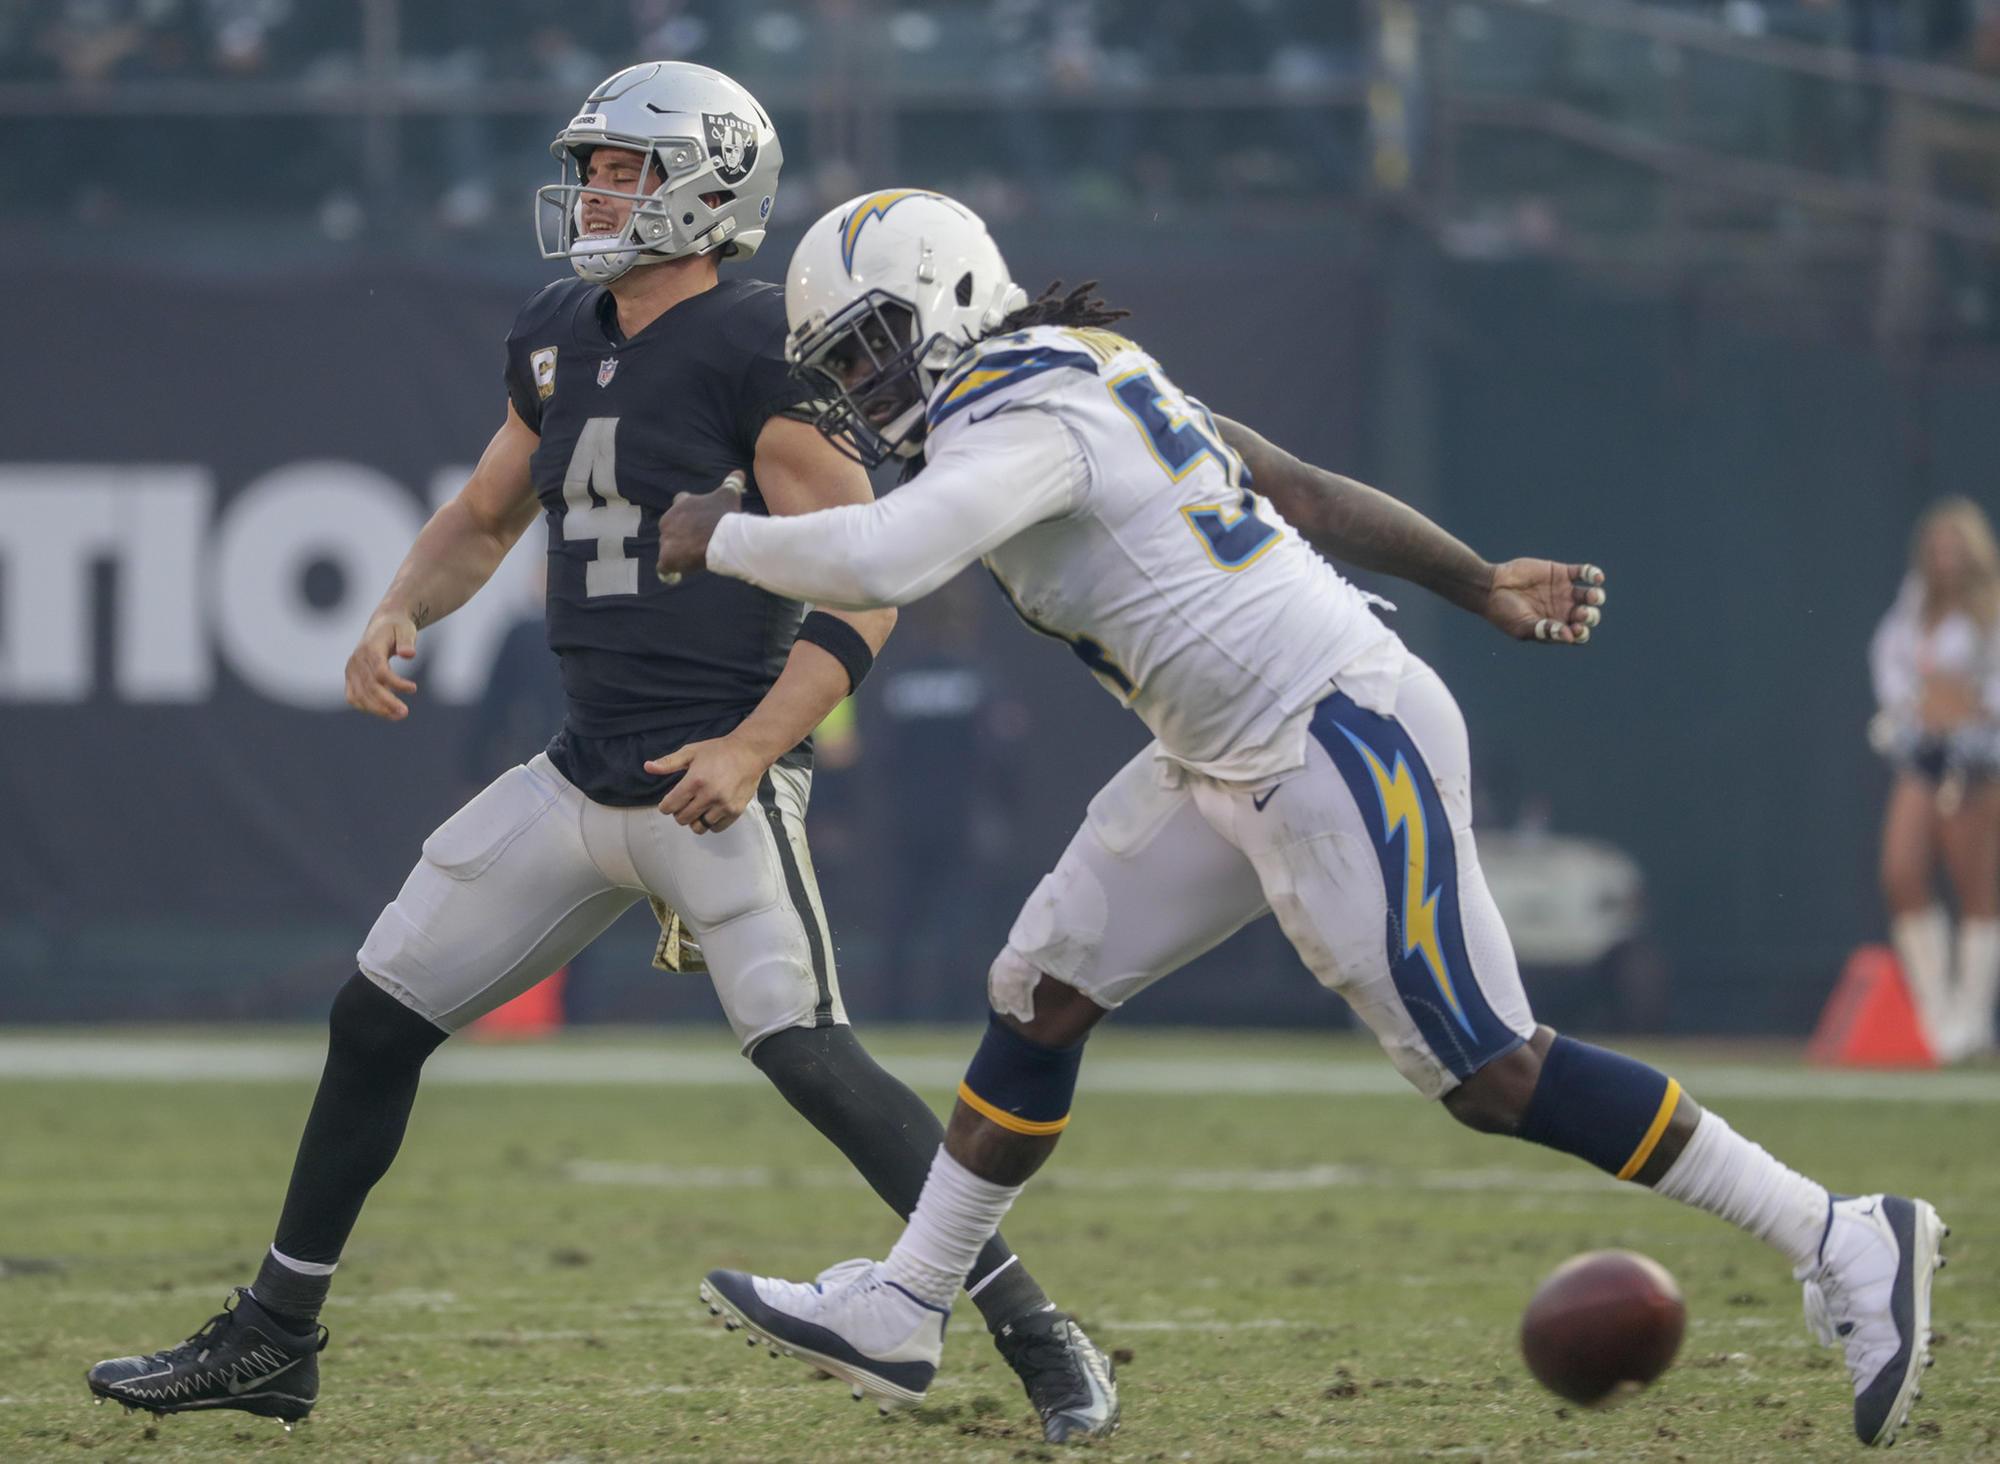 La-sp-chargers-what-we-learned-20181112